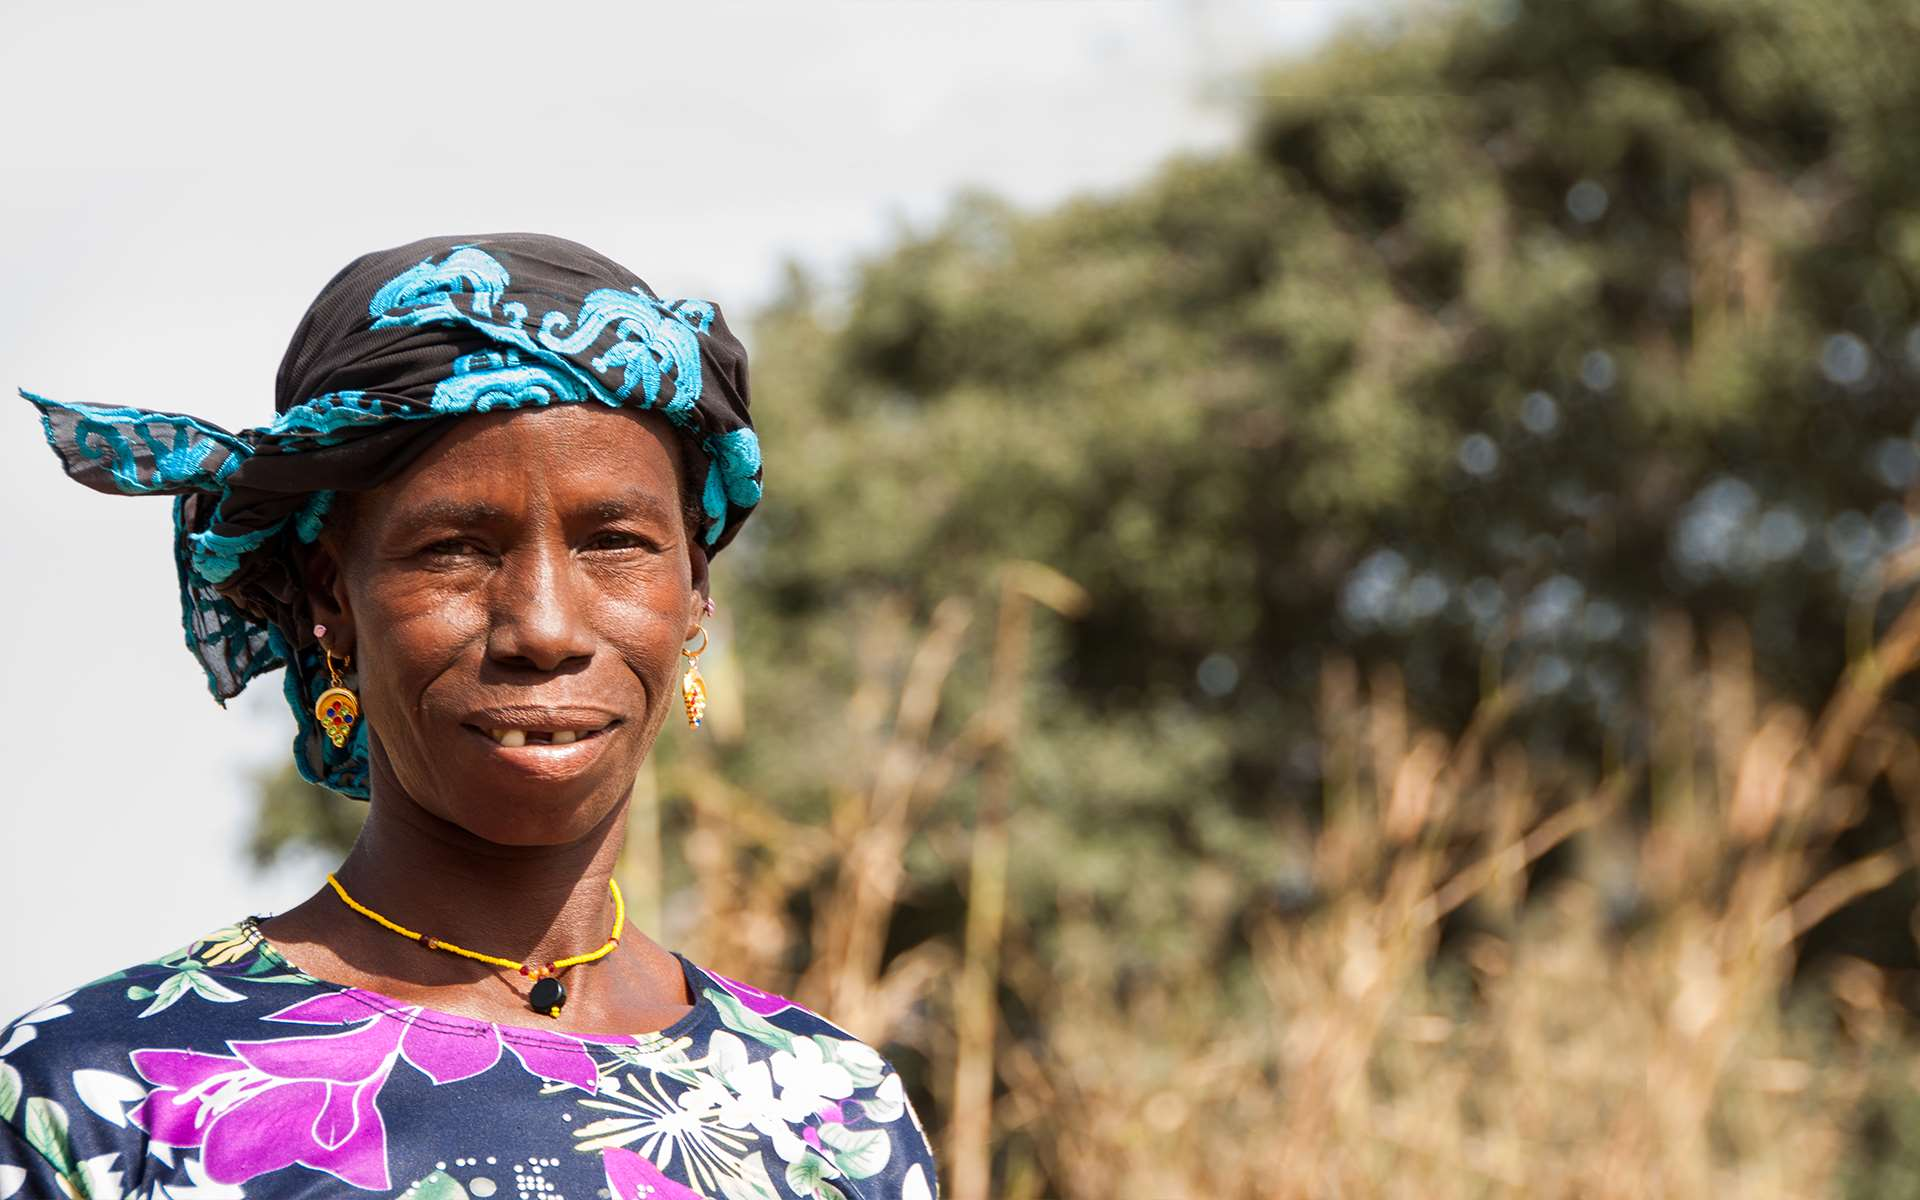 Clsoe up of Habi, a woman working with Tree Aid in Mali.